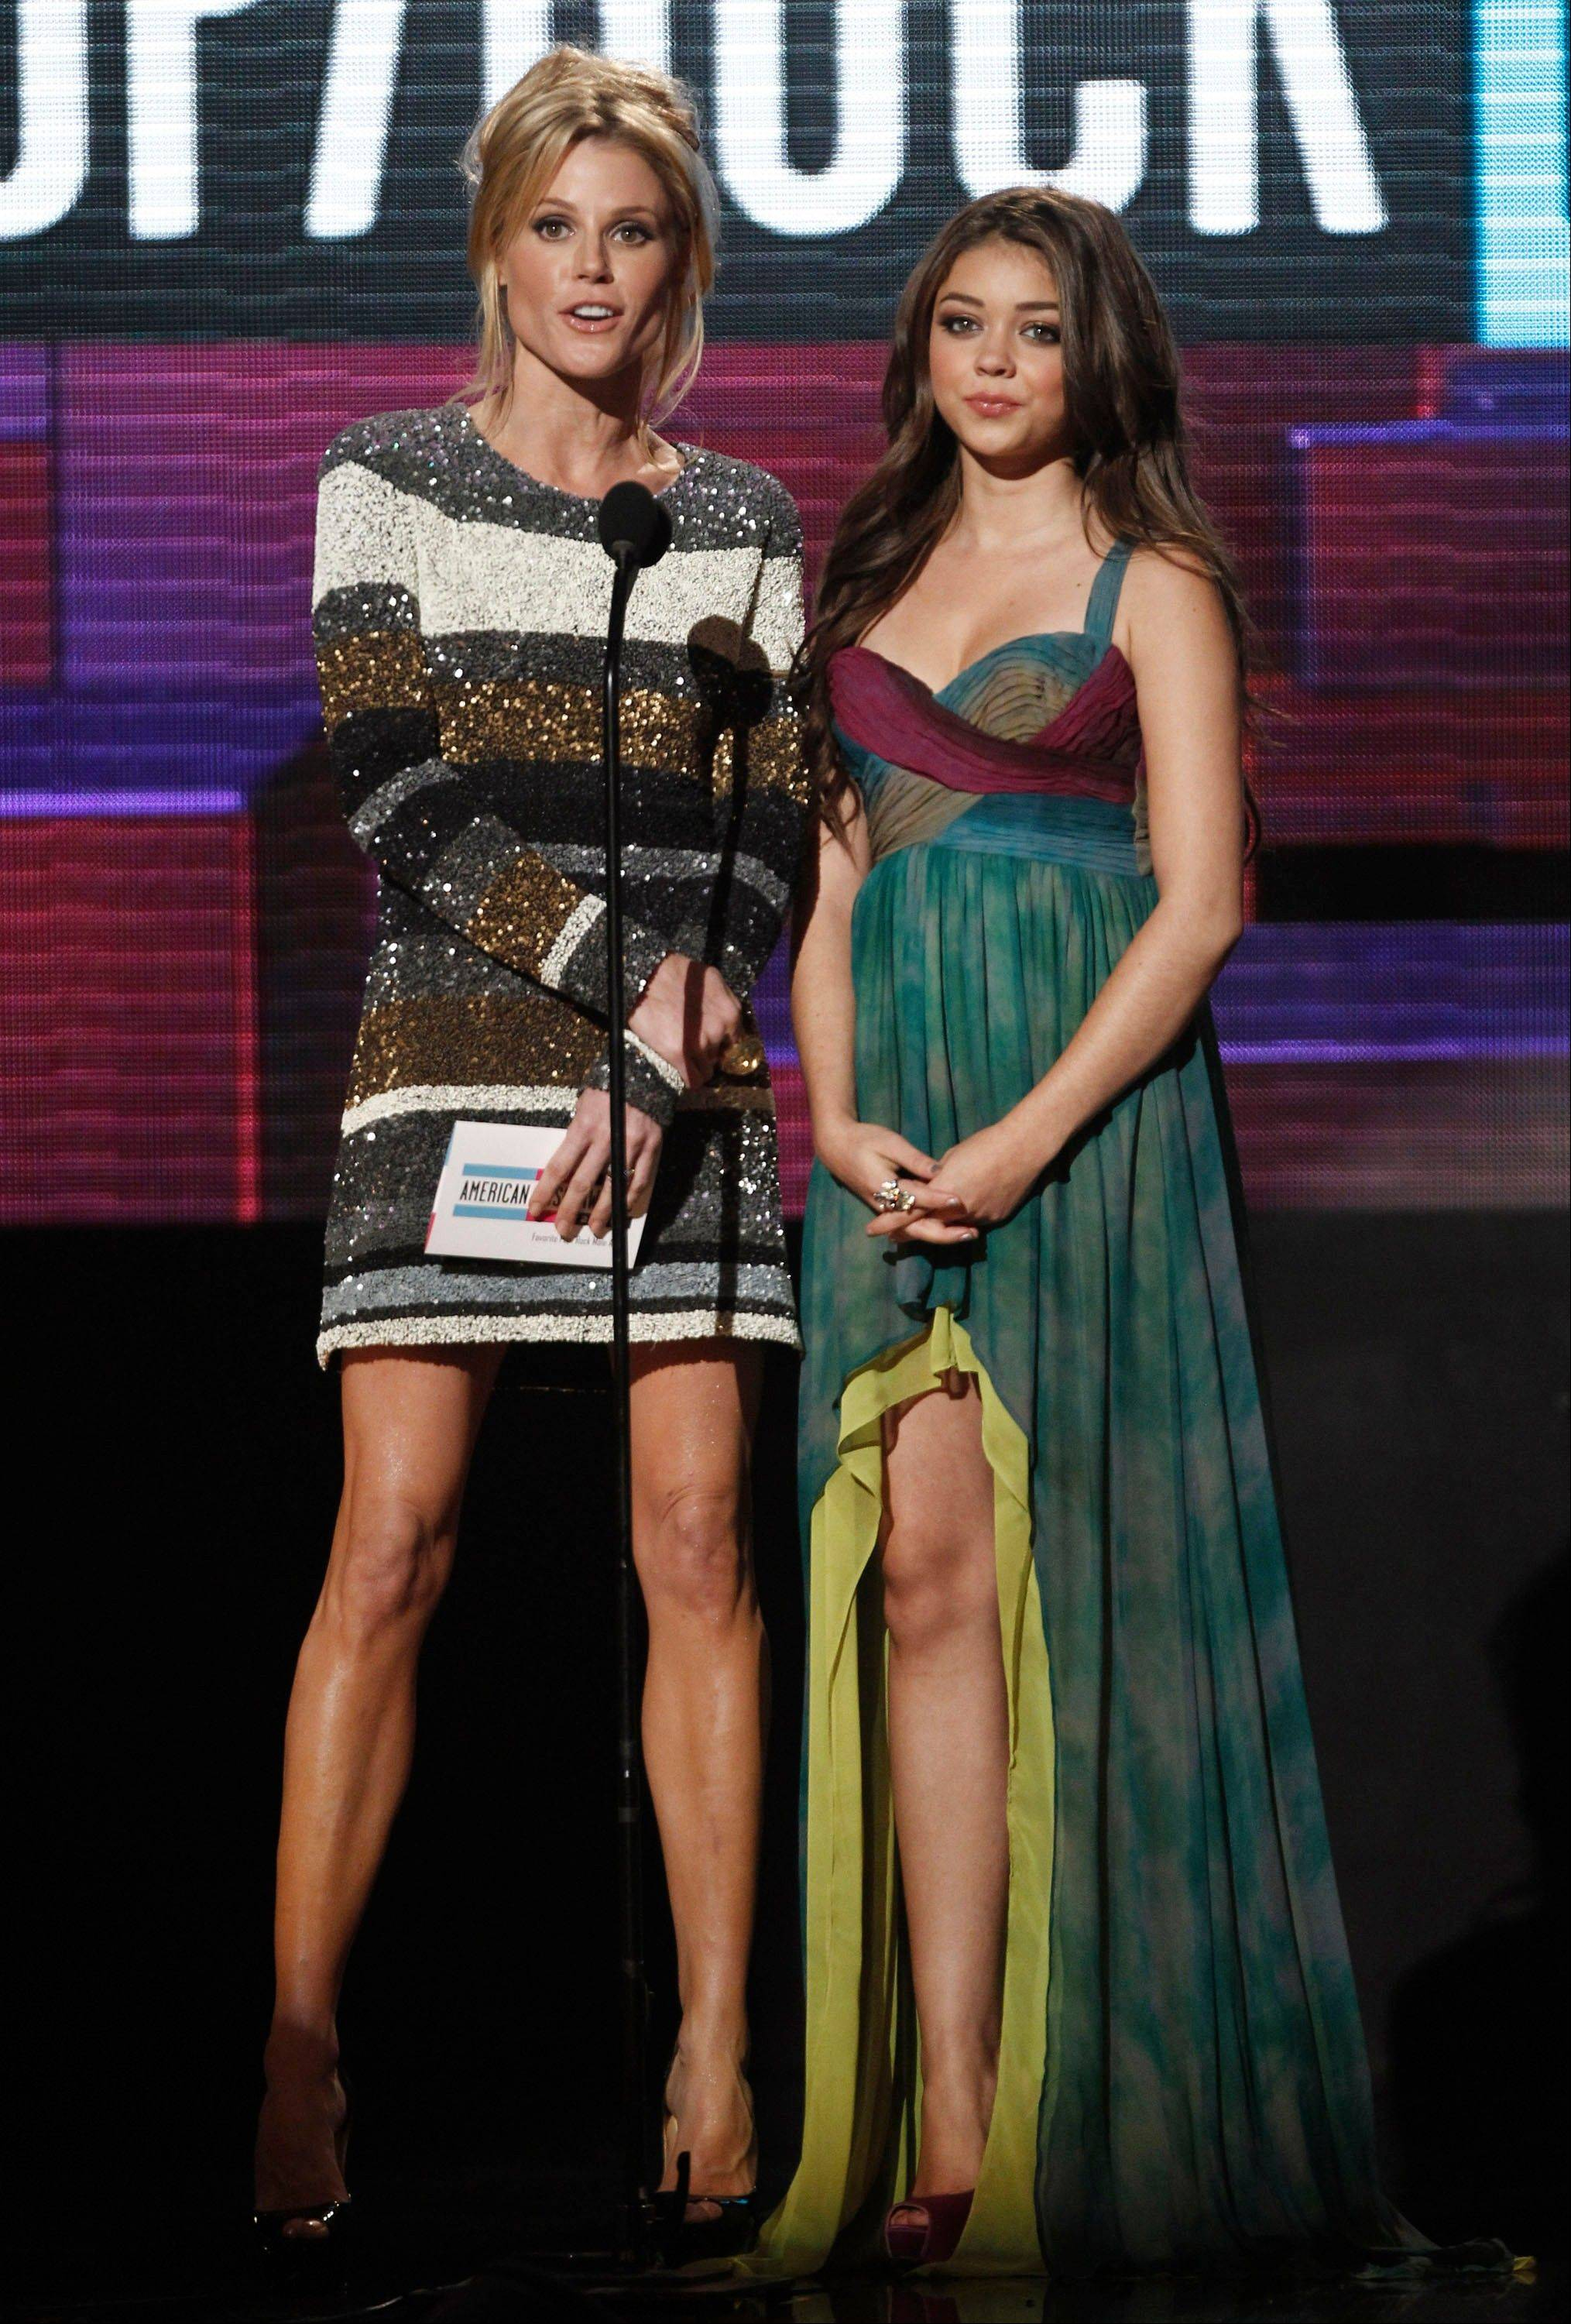 Julie Bowen, left, and Sarah Hyland are seen onstage at the 39th Annual American Music Awards on Sunday, Nov. 20, 2011 in Los Angeles.